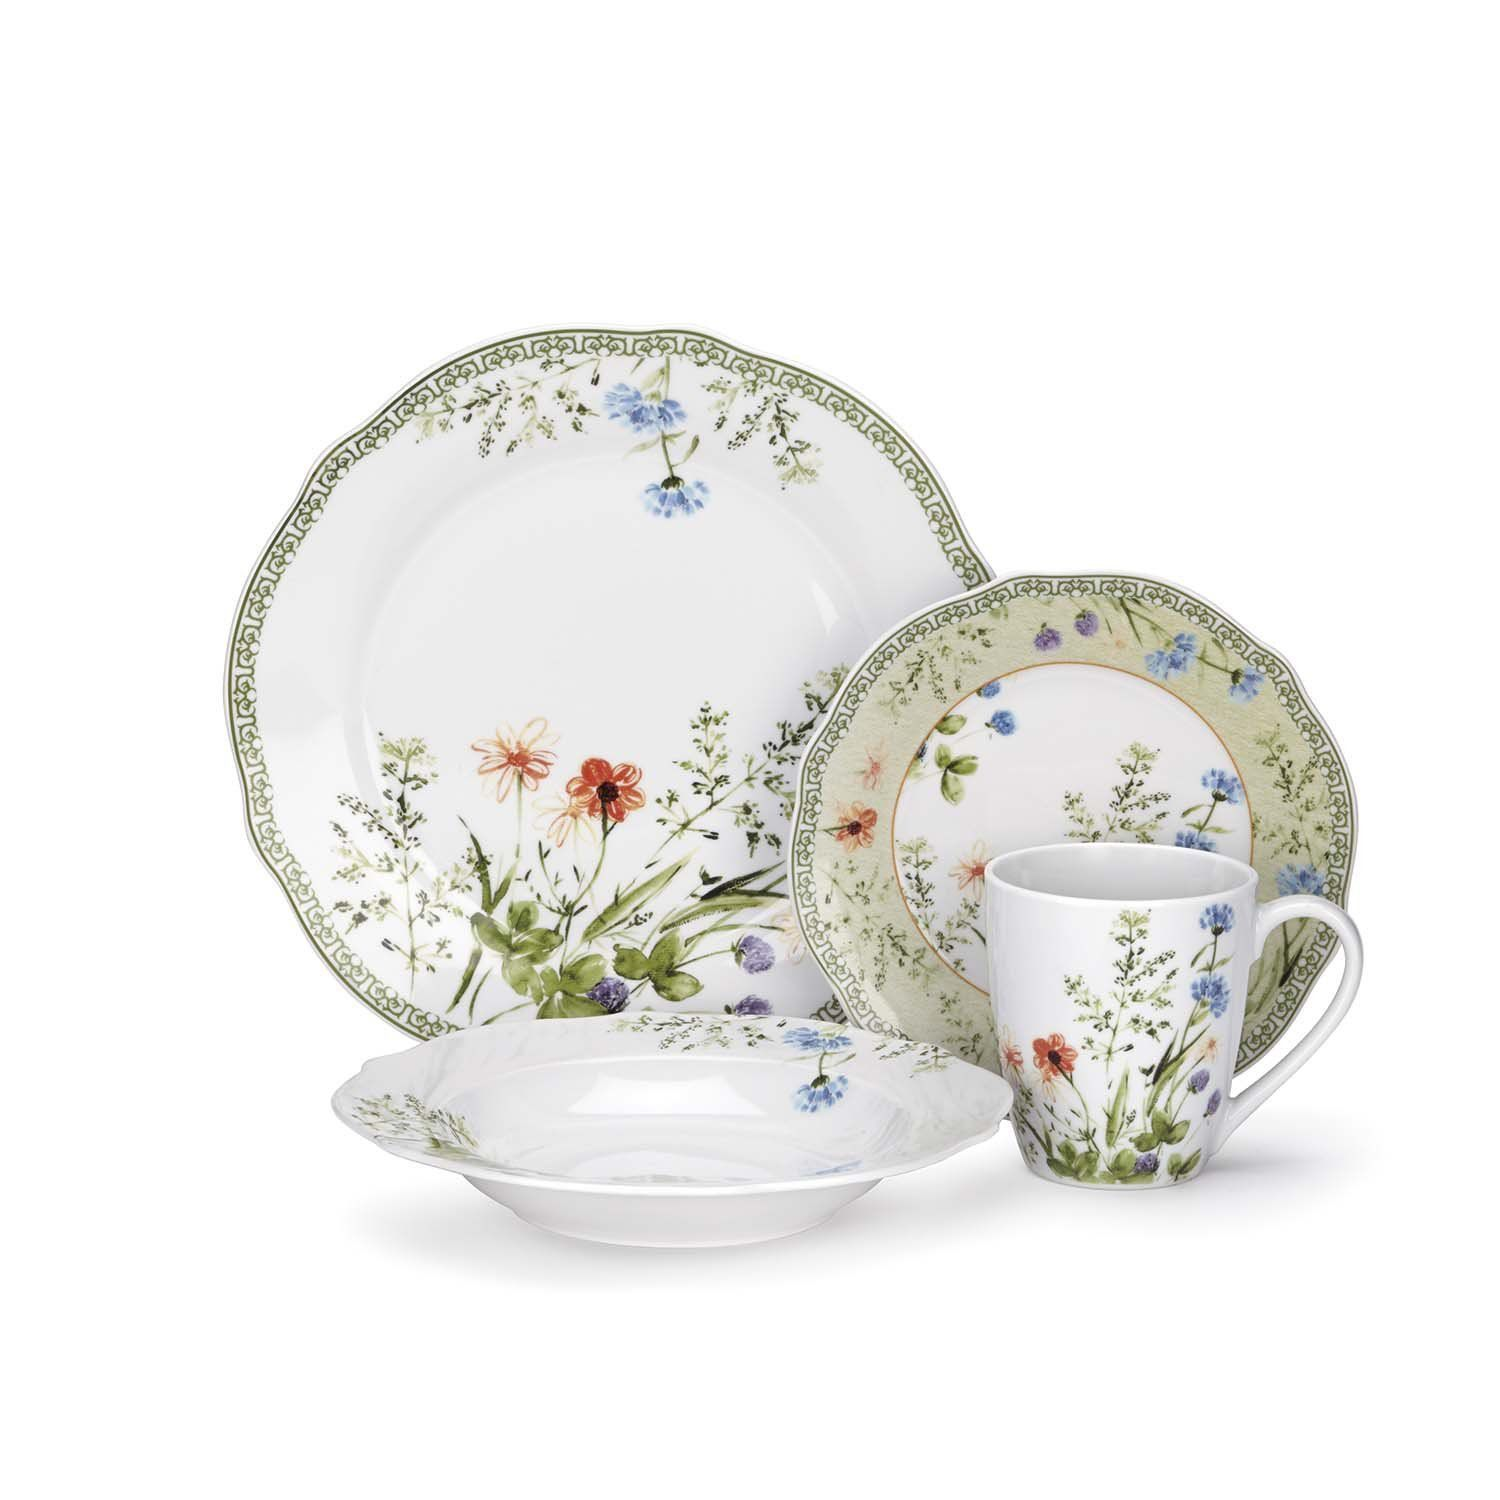 Cuisinart Fleurie Collection Porcelain Dinnerware Set - Overstock Shopping - Great Deals on Cuisinart Formal Dinnerware  sc 1 st  Pinterest & Porcelain dinnerware lends an instant elegance to any meal ...